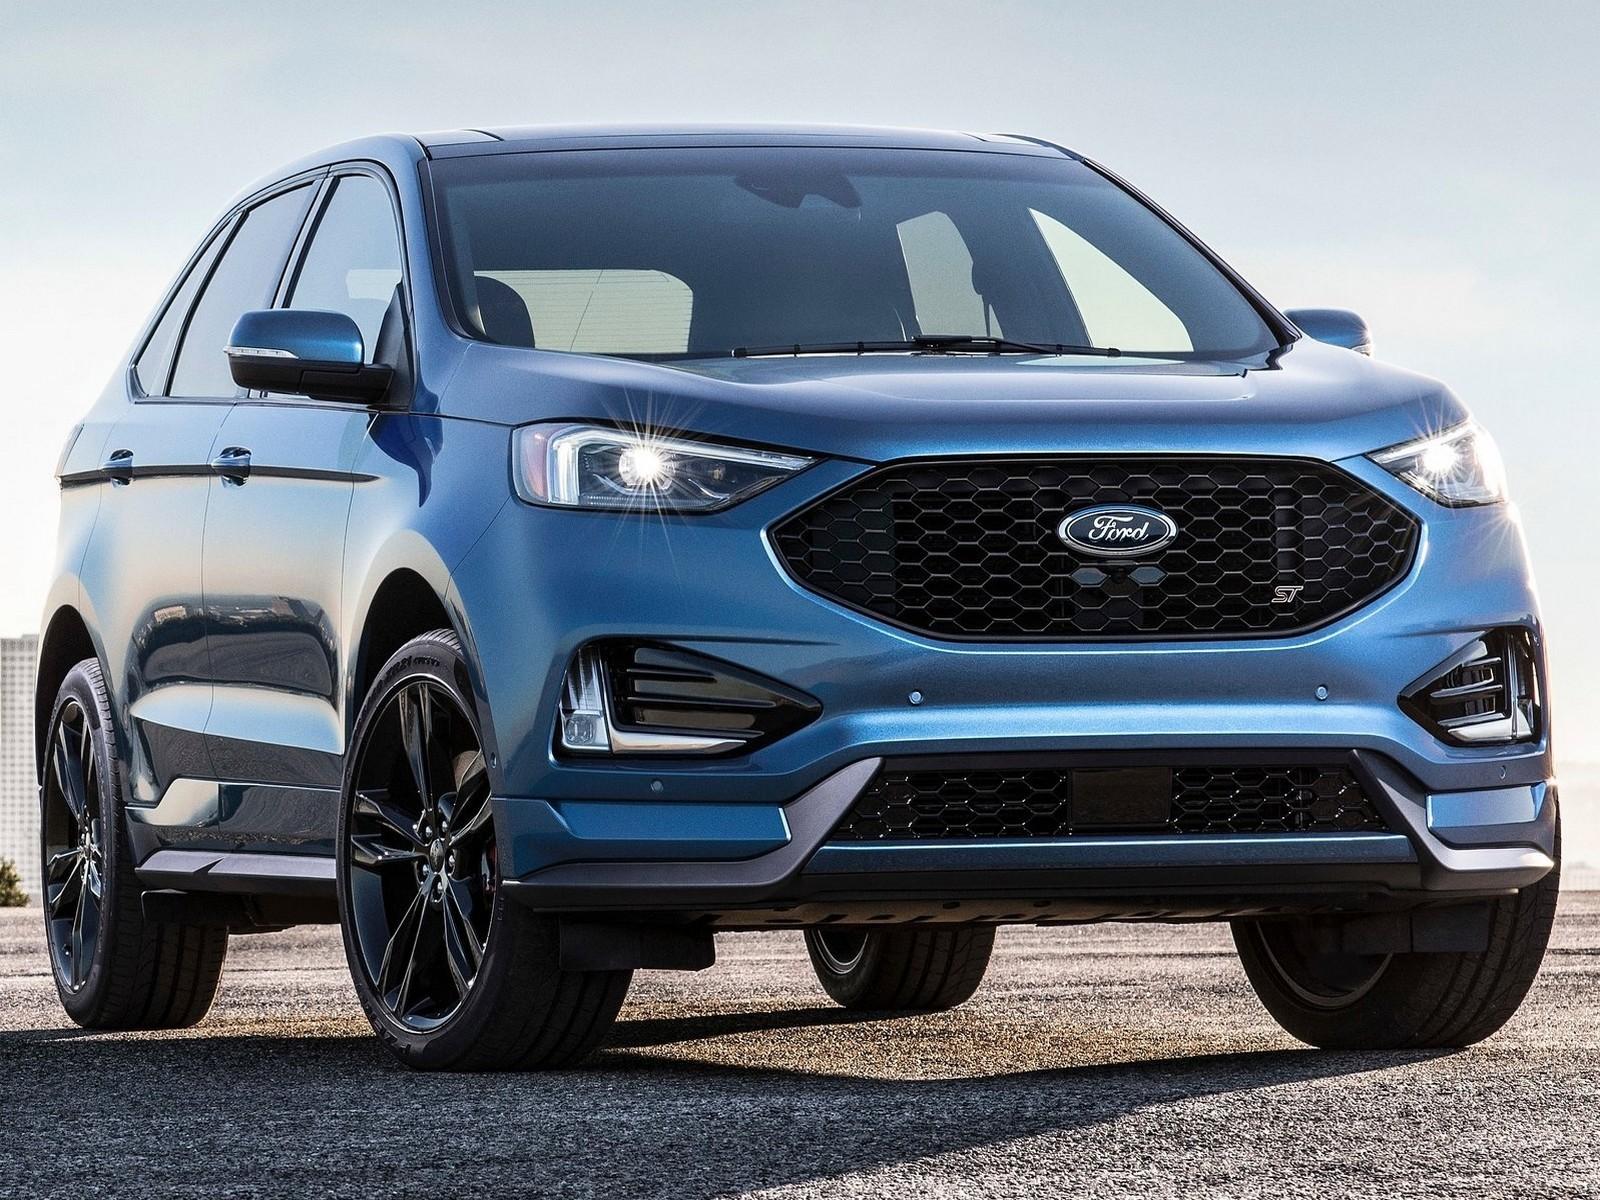 le nouveau ford edge st 2019 d voil detroit auto show. Black Bedroom Furniture Sets. Home Design Ideas